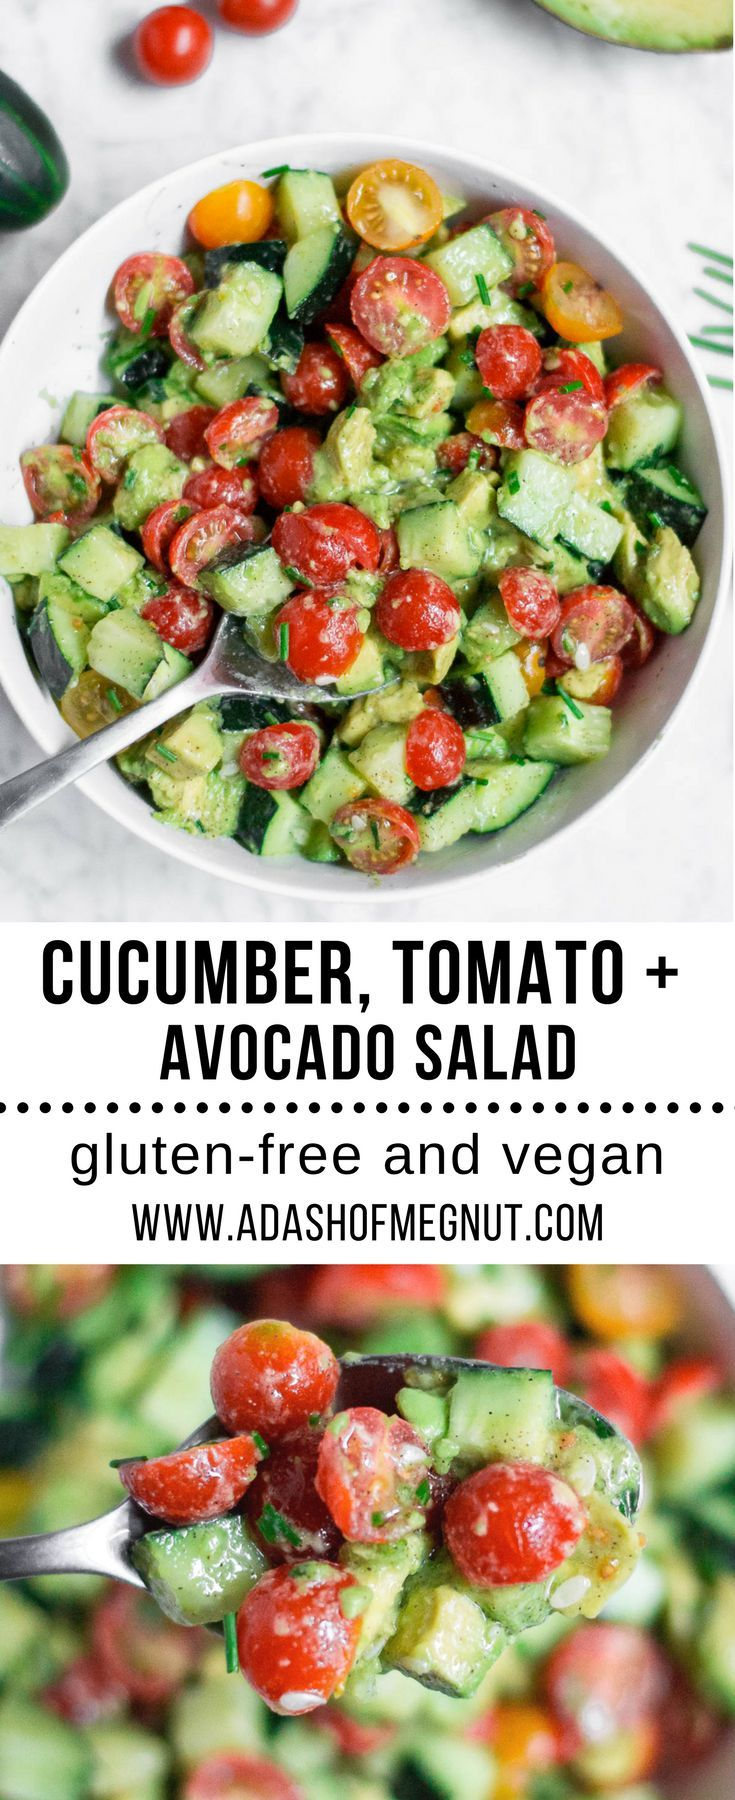 This cucumber tomato avocado salad is a simple and refreshing gluten-free side d…